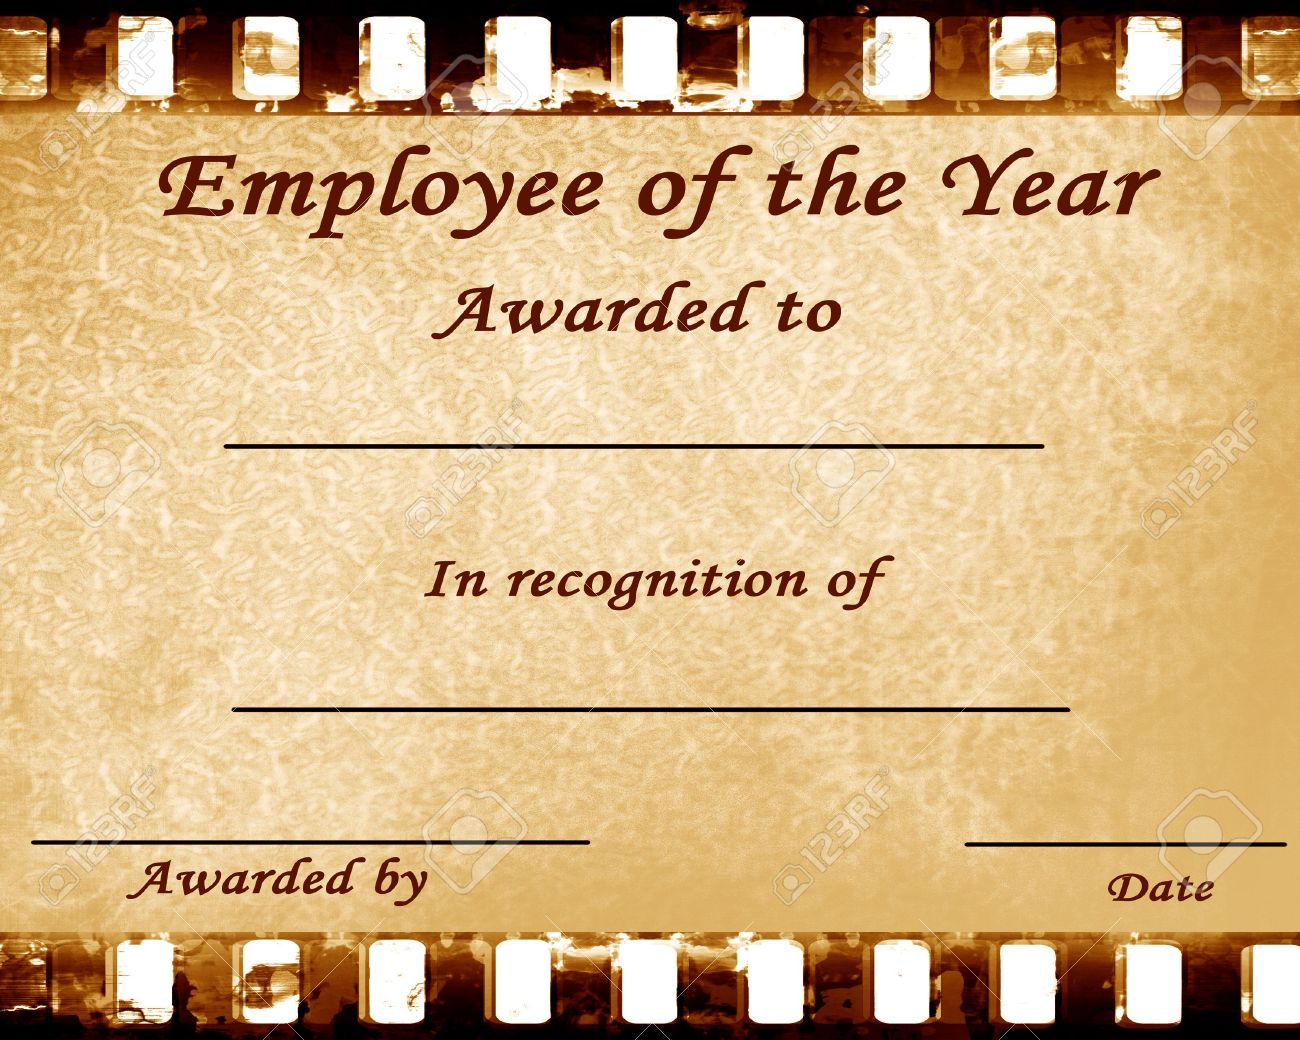 Employee of the Year Award - New York State Office of Children ...